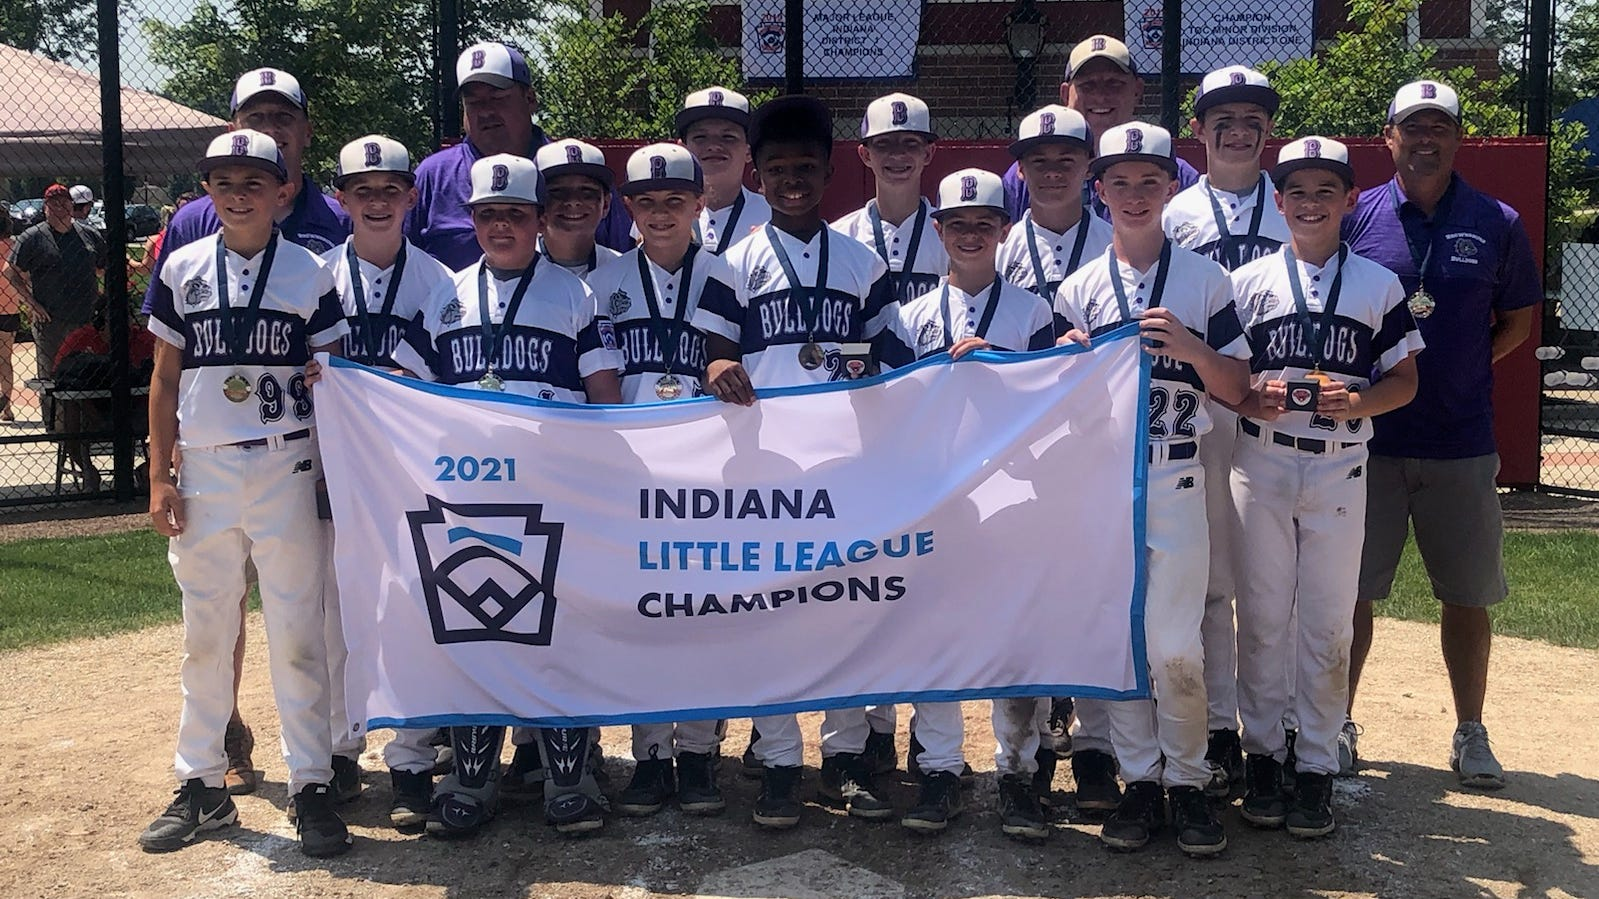 Little League baseball: Brownsburg wins state title, advances to Great Lakes tournament